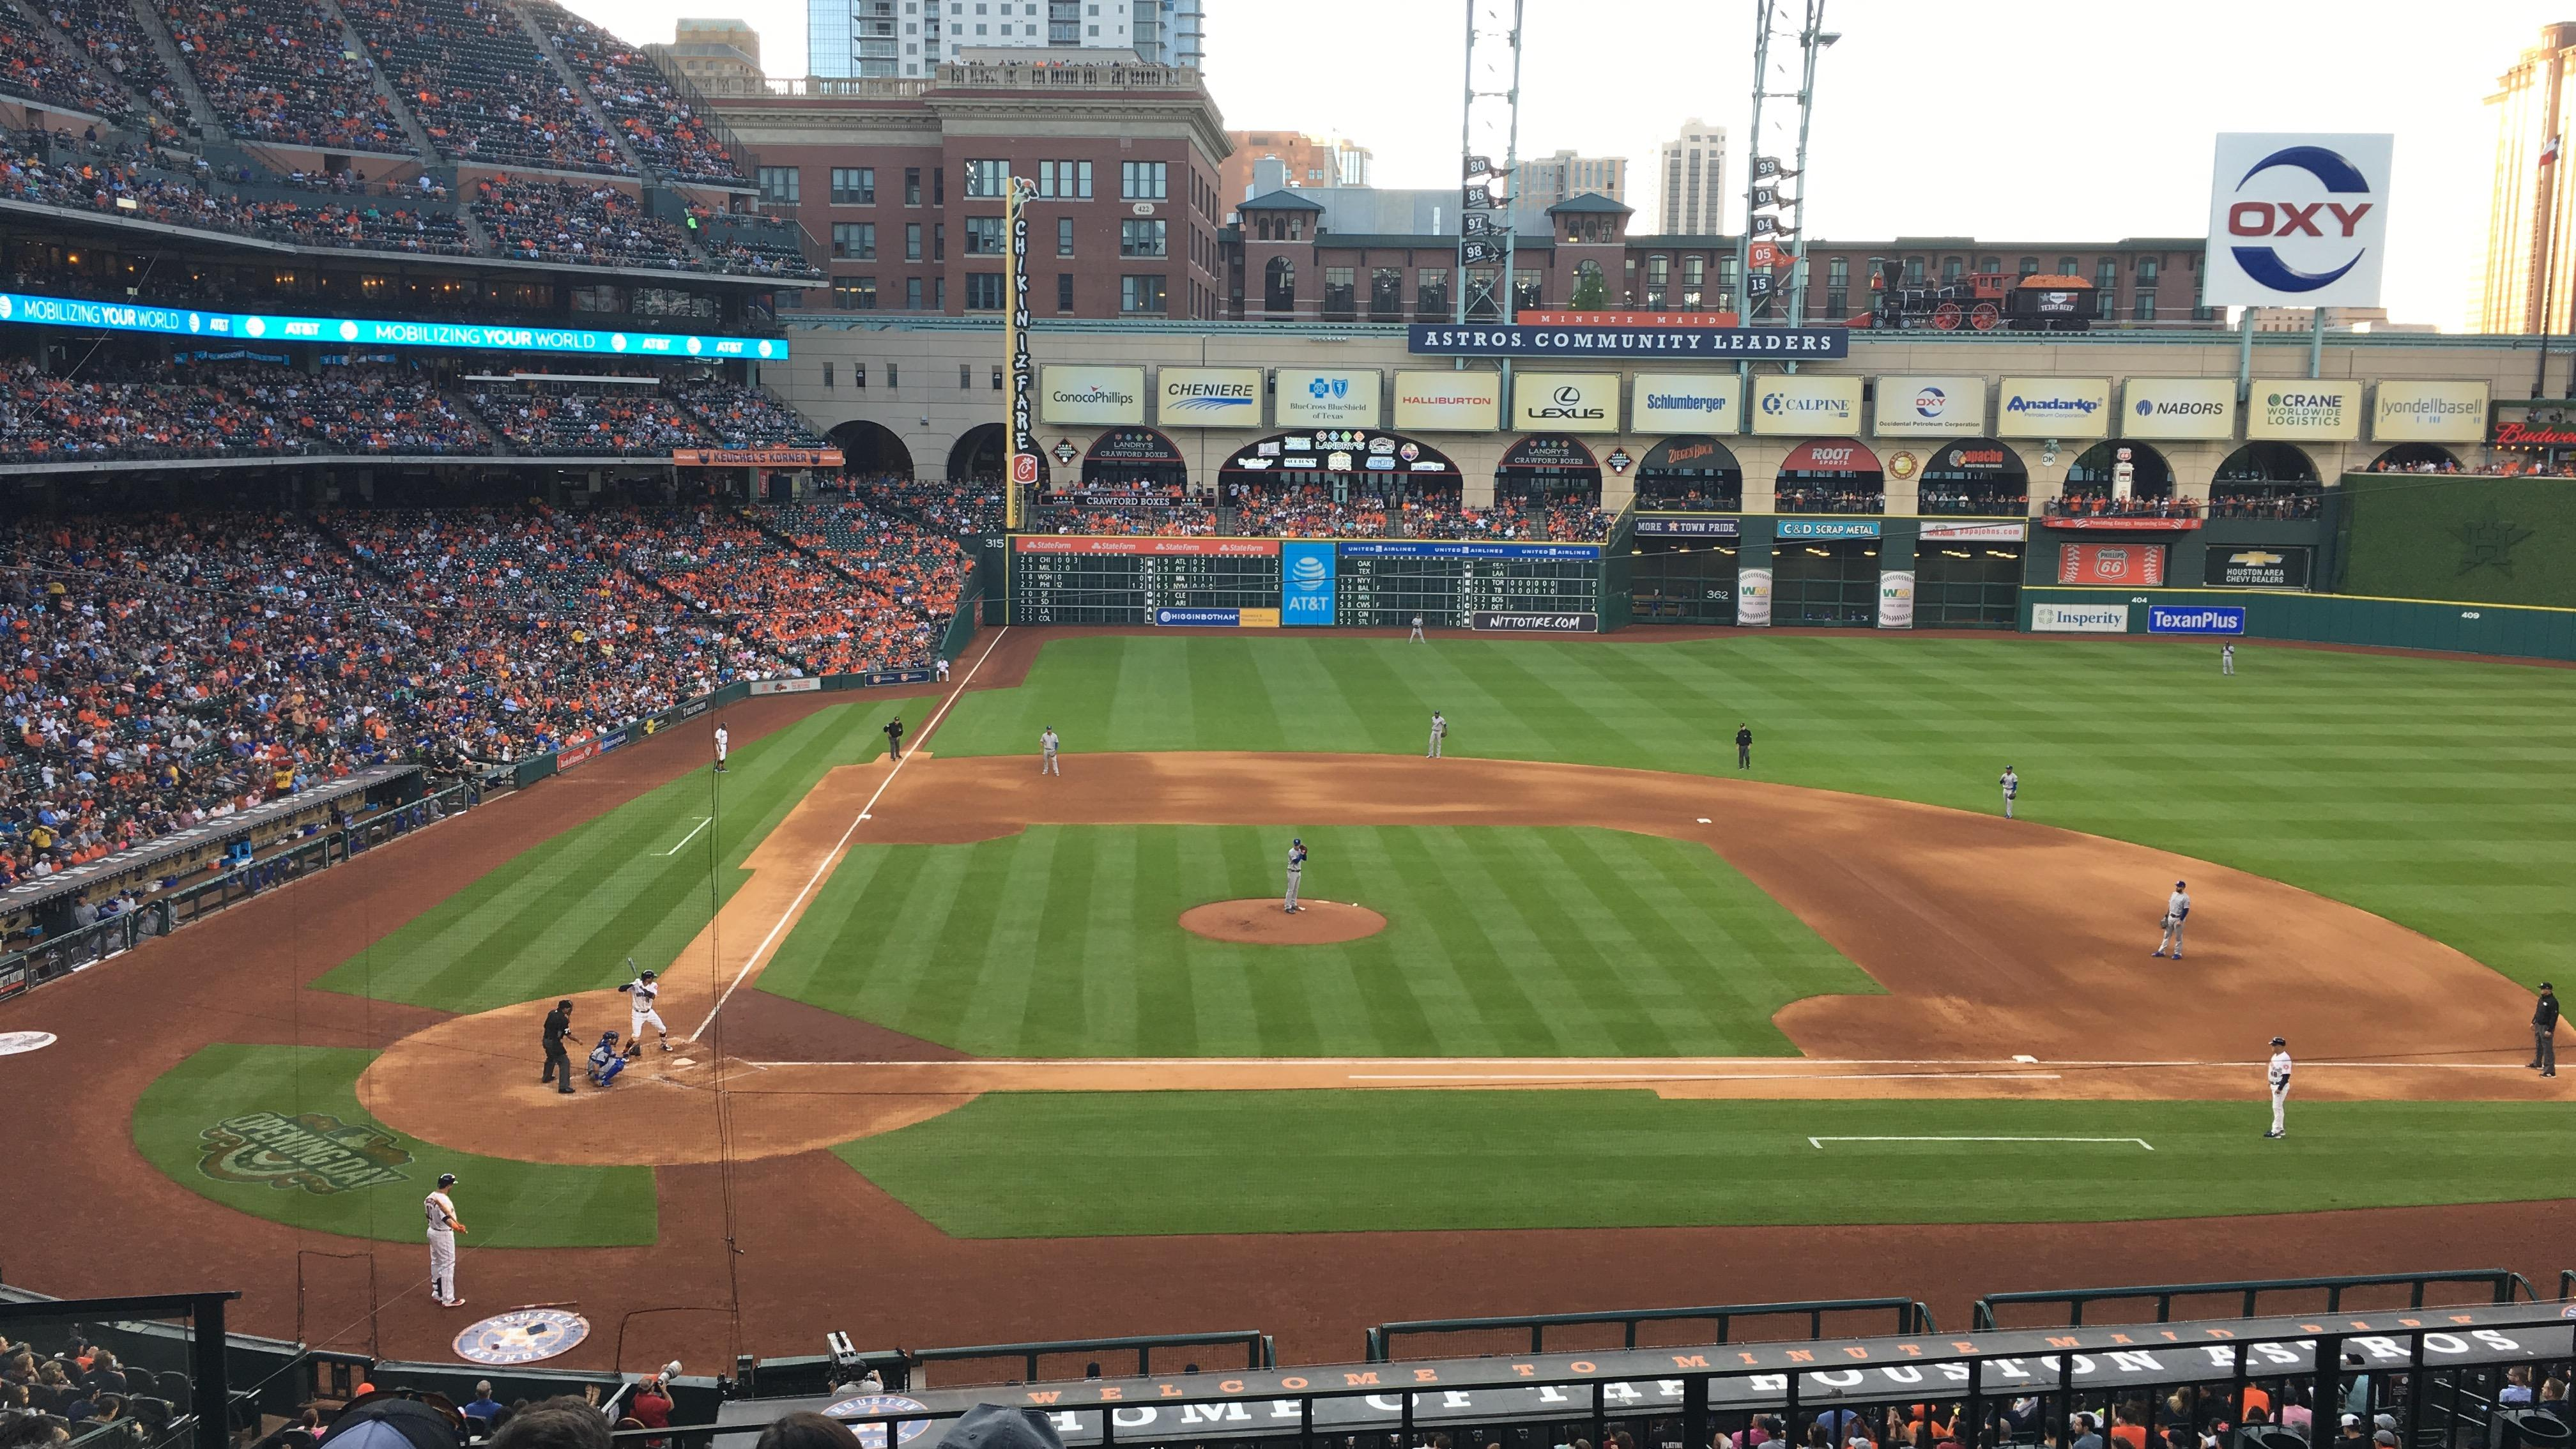 Minute Maid Park Section 224 Row 5 Seat 3